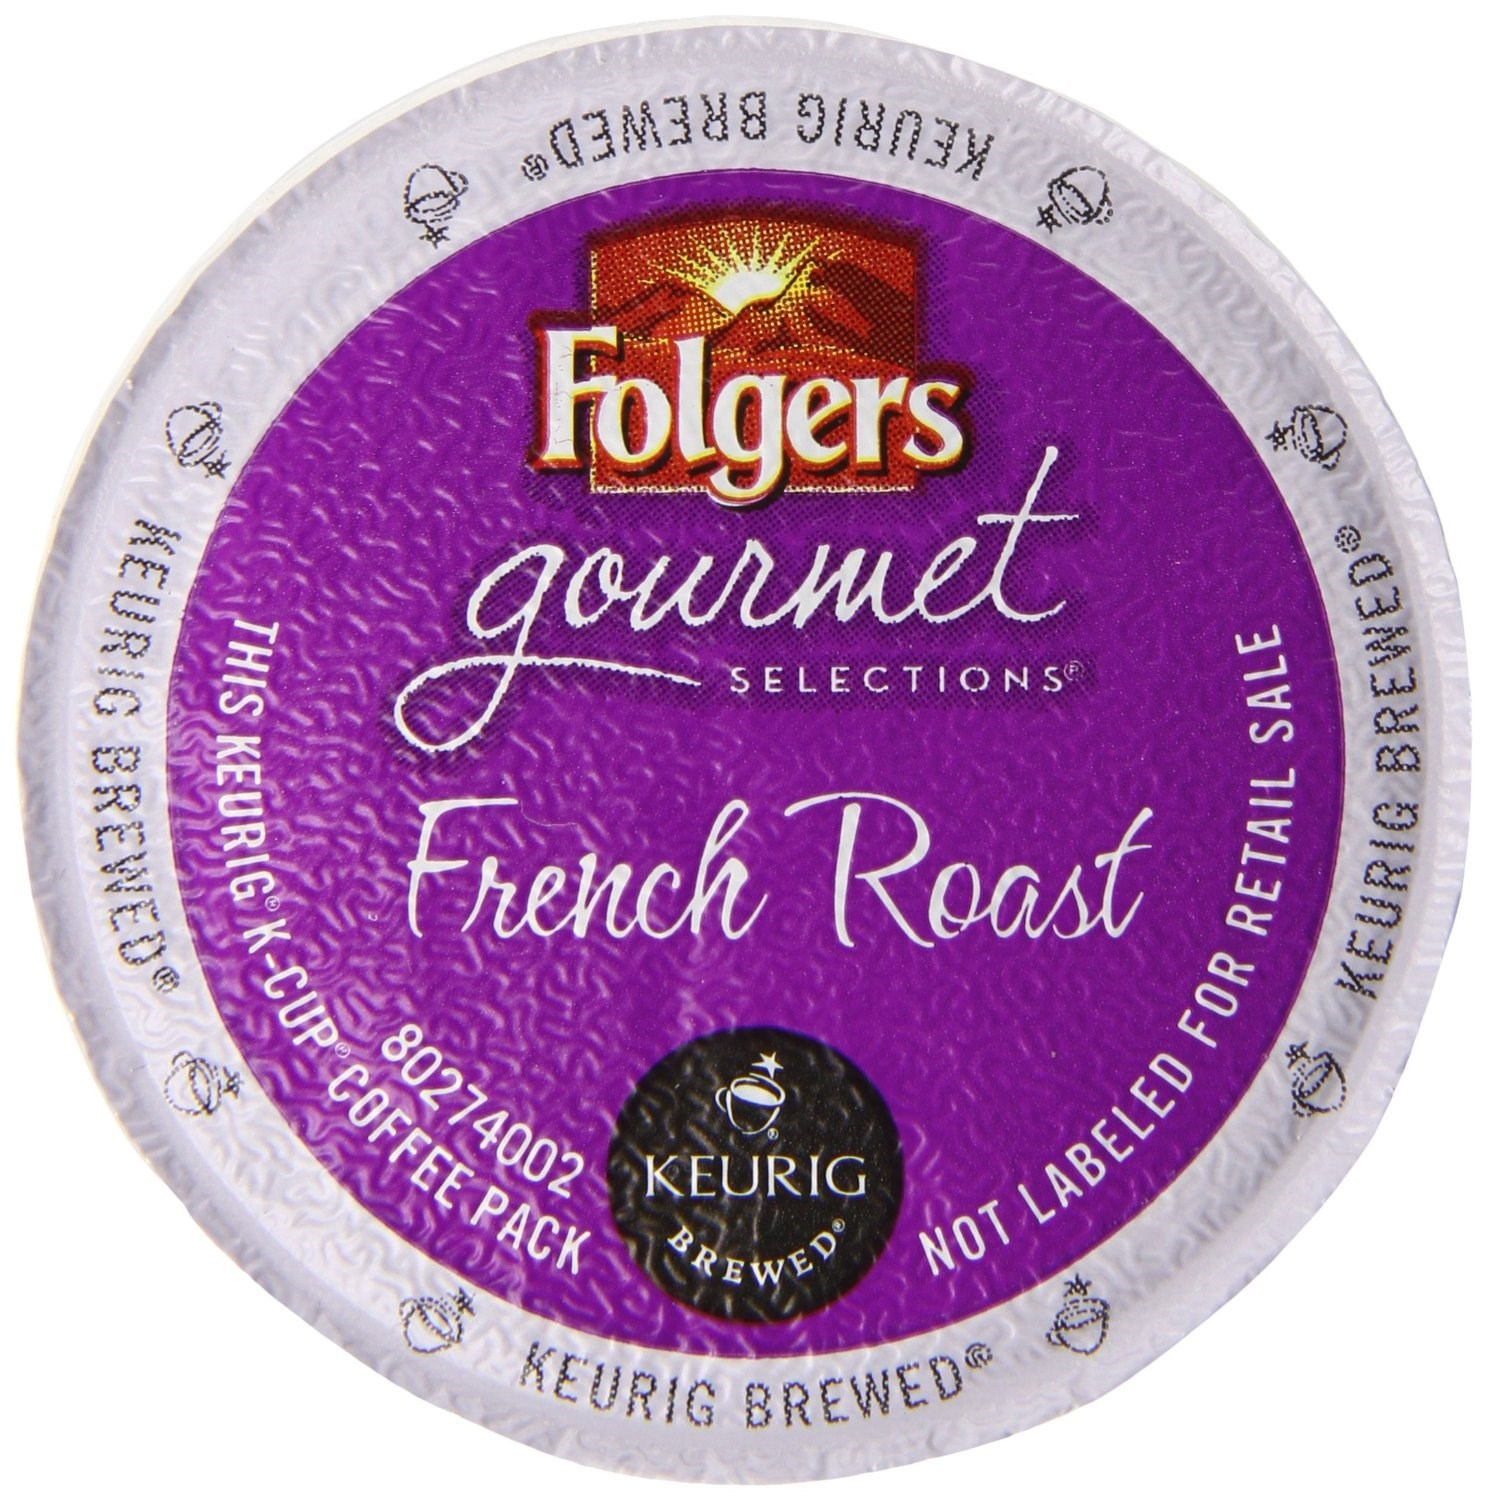 Folgers Gourmet Selections French Roast Coffee K-Cups, 12 CT (Pack of 6)